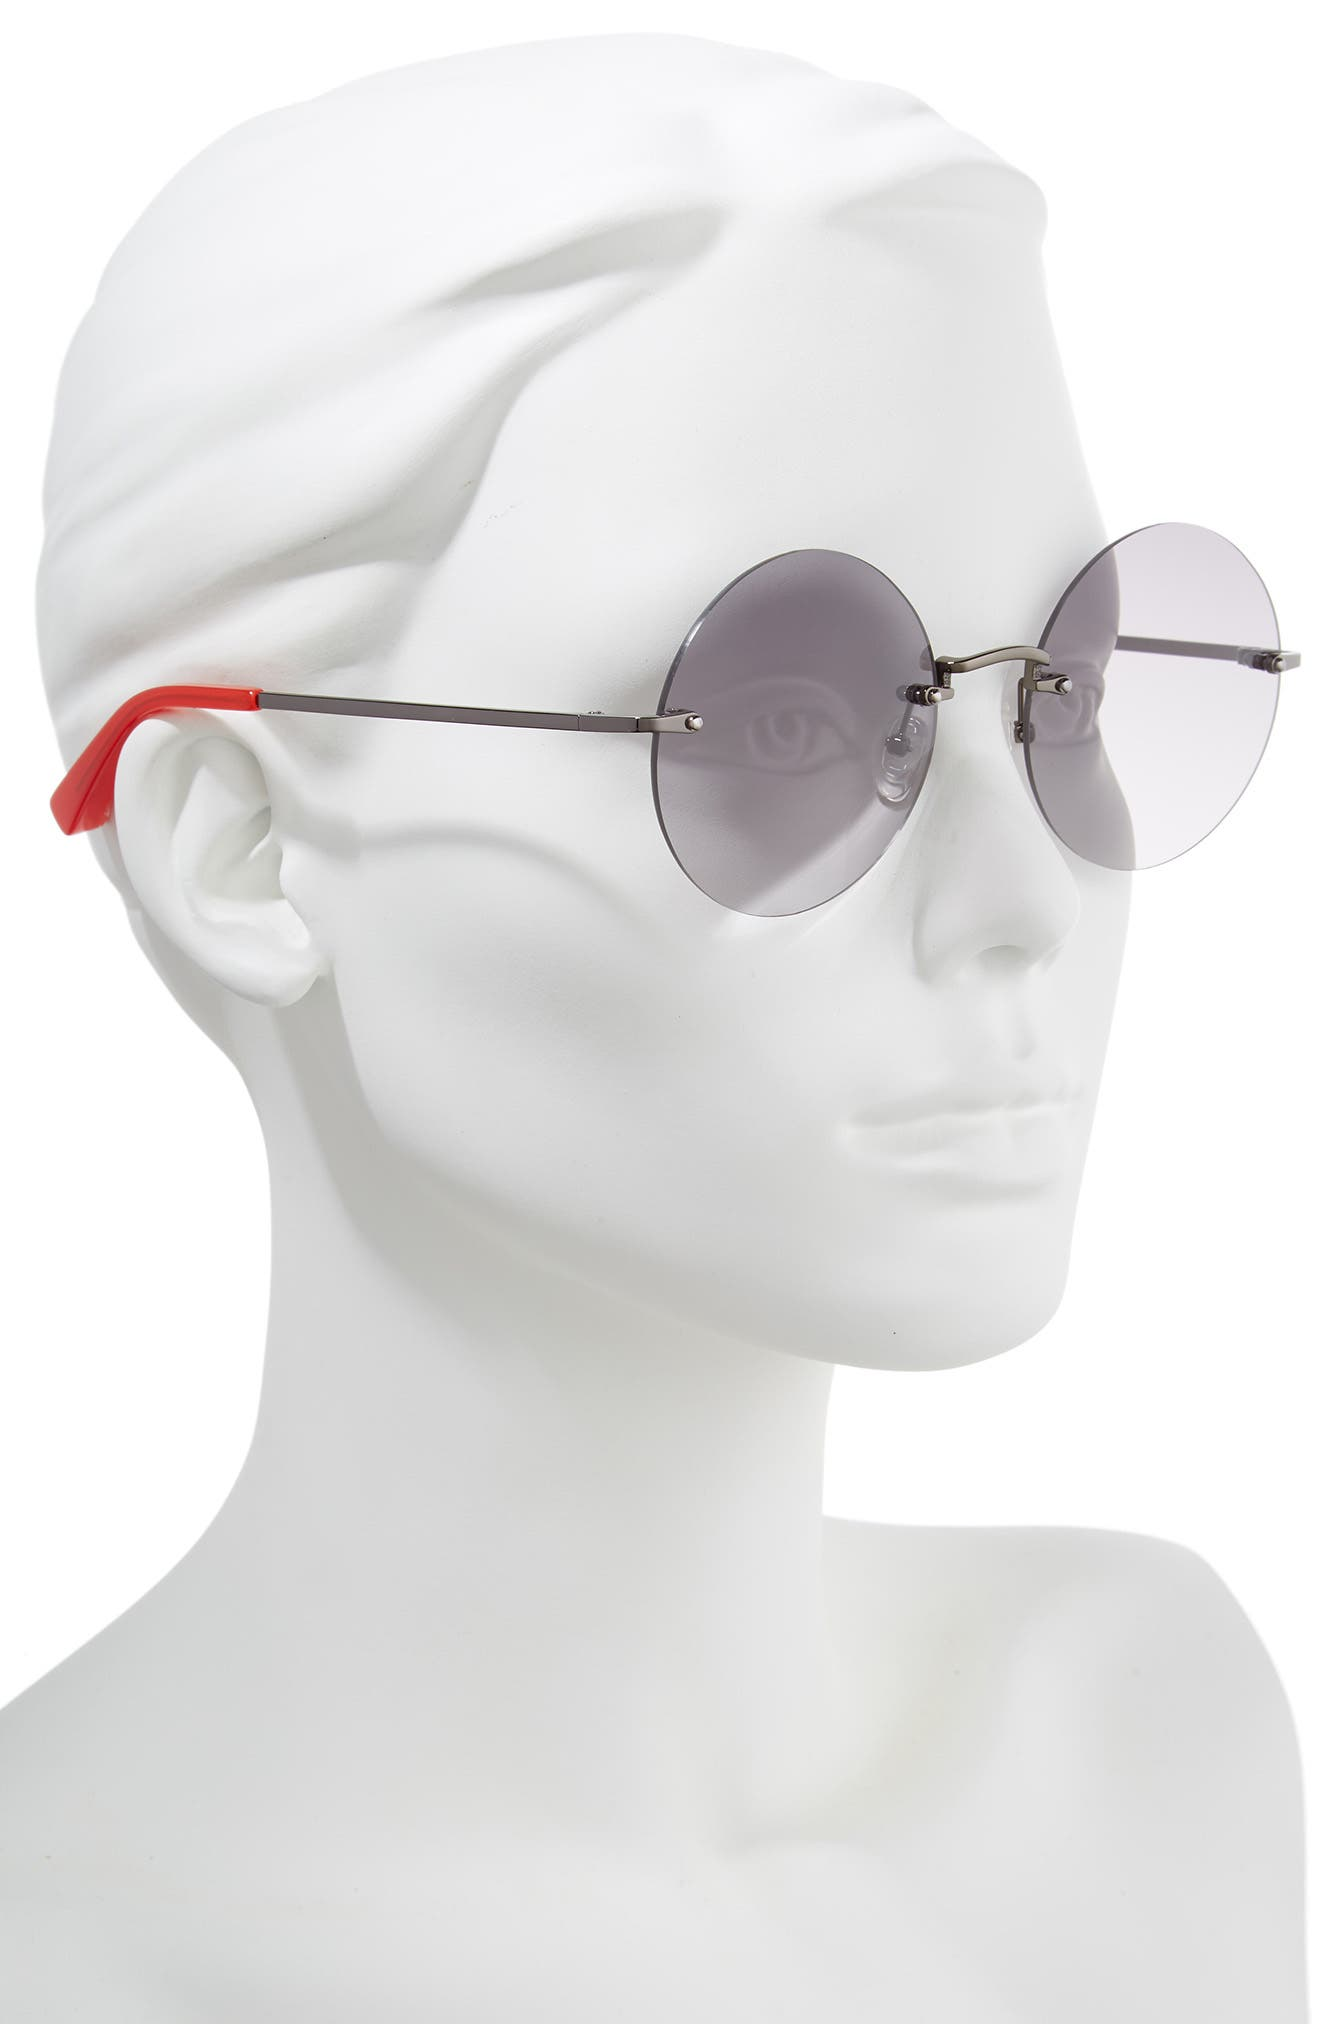 Kelly 57mm Rimless Round Sunglasses,                             Alternate thumbnail 2, color,                             001